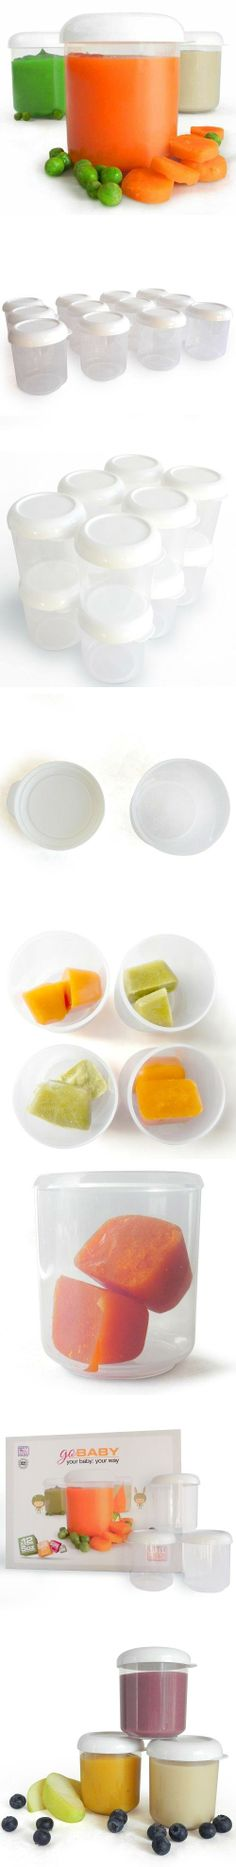 Baby Food Storage Containers with Lids - 12/5oz Jar Set BPA Free - Freezer Safe Includes 12 - 5 ounce containers. Holds 1 - 4 ounces of pureed fruits or veggies. 2 inch wide mouth easily fits your frozen cubes. BPA Free, Microwave, Dishwasher, and Freezer Safe. Made in the USA.  #Littleware #Baby_Product